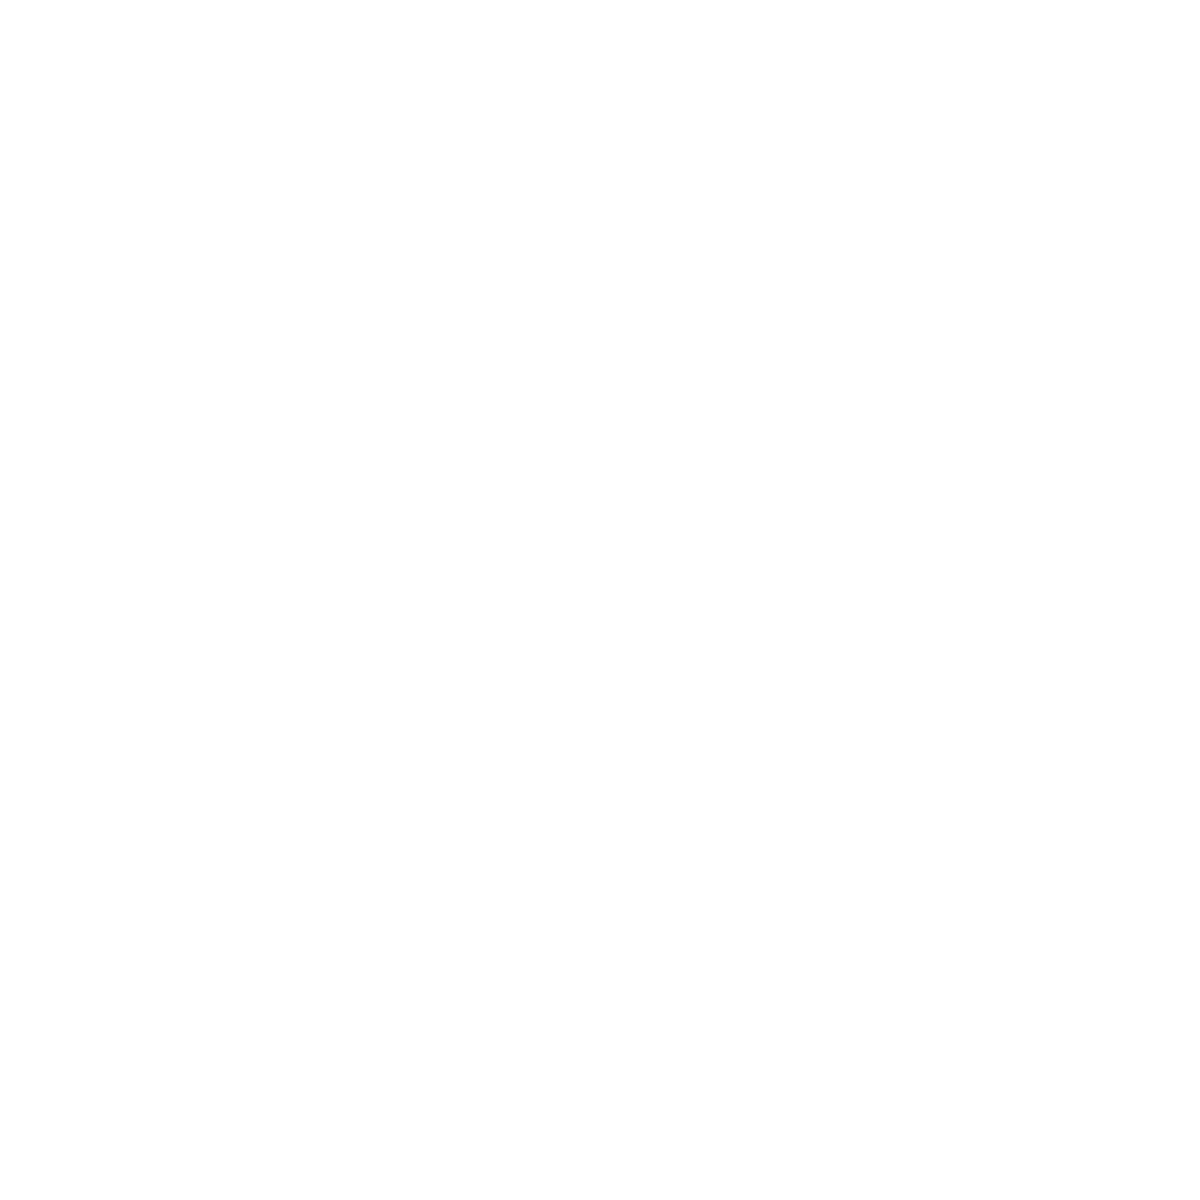 Hance Park Conservancy